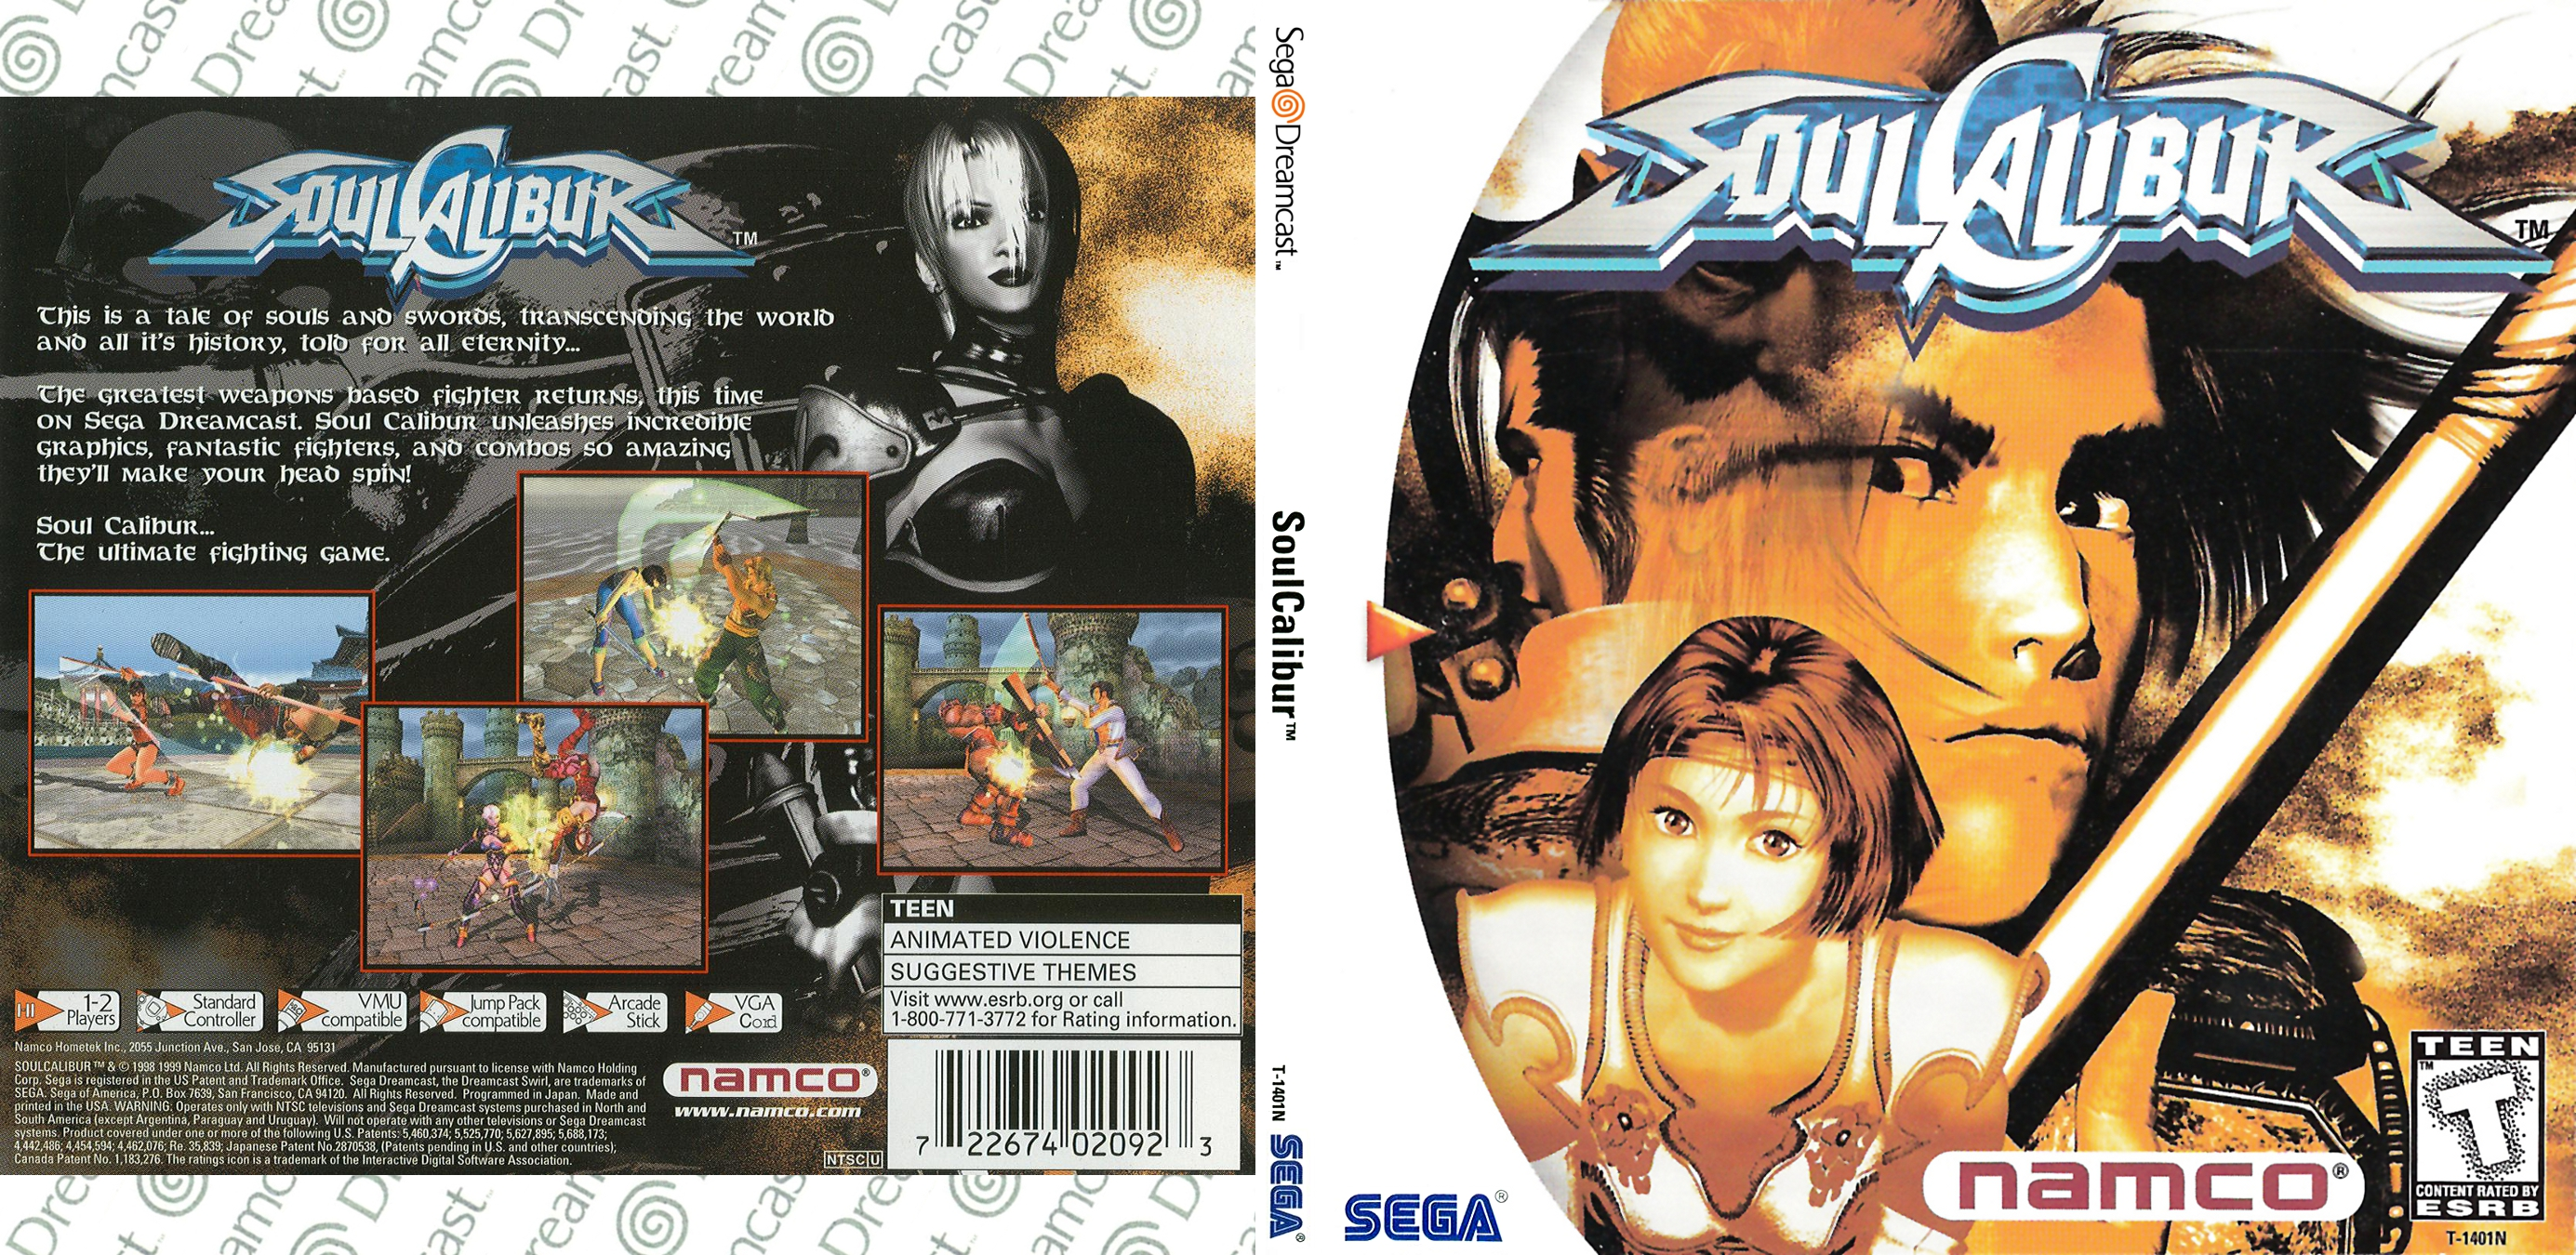 mega nz] Soul Calibur - (USA, EUR) (CDI) - (DC) Game Downloads